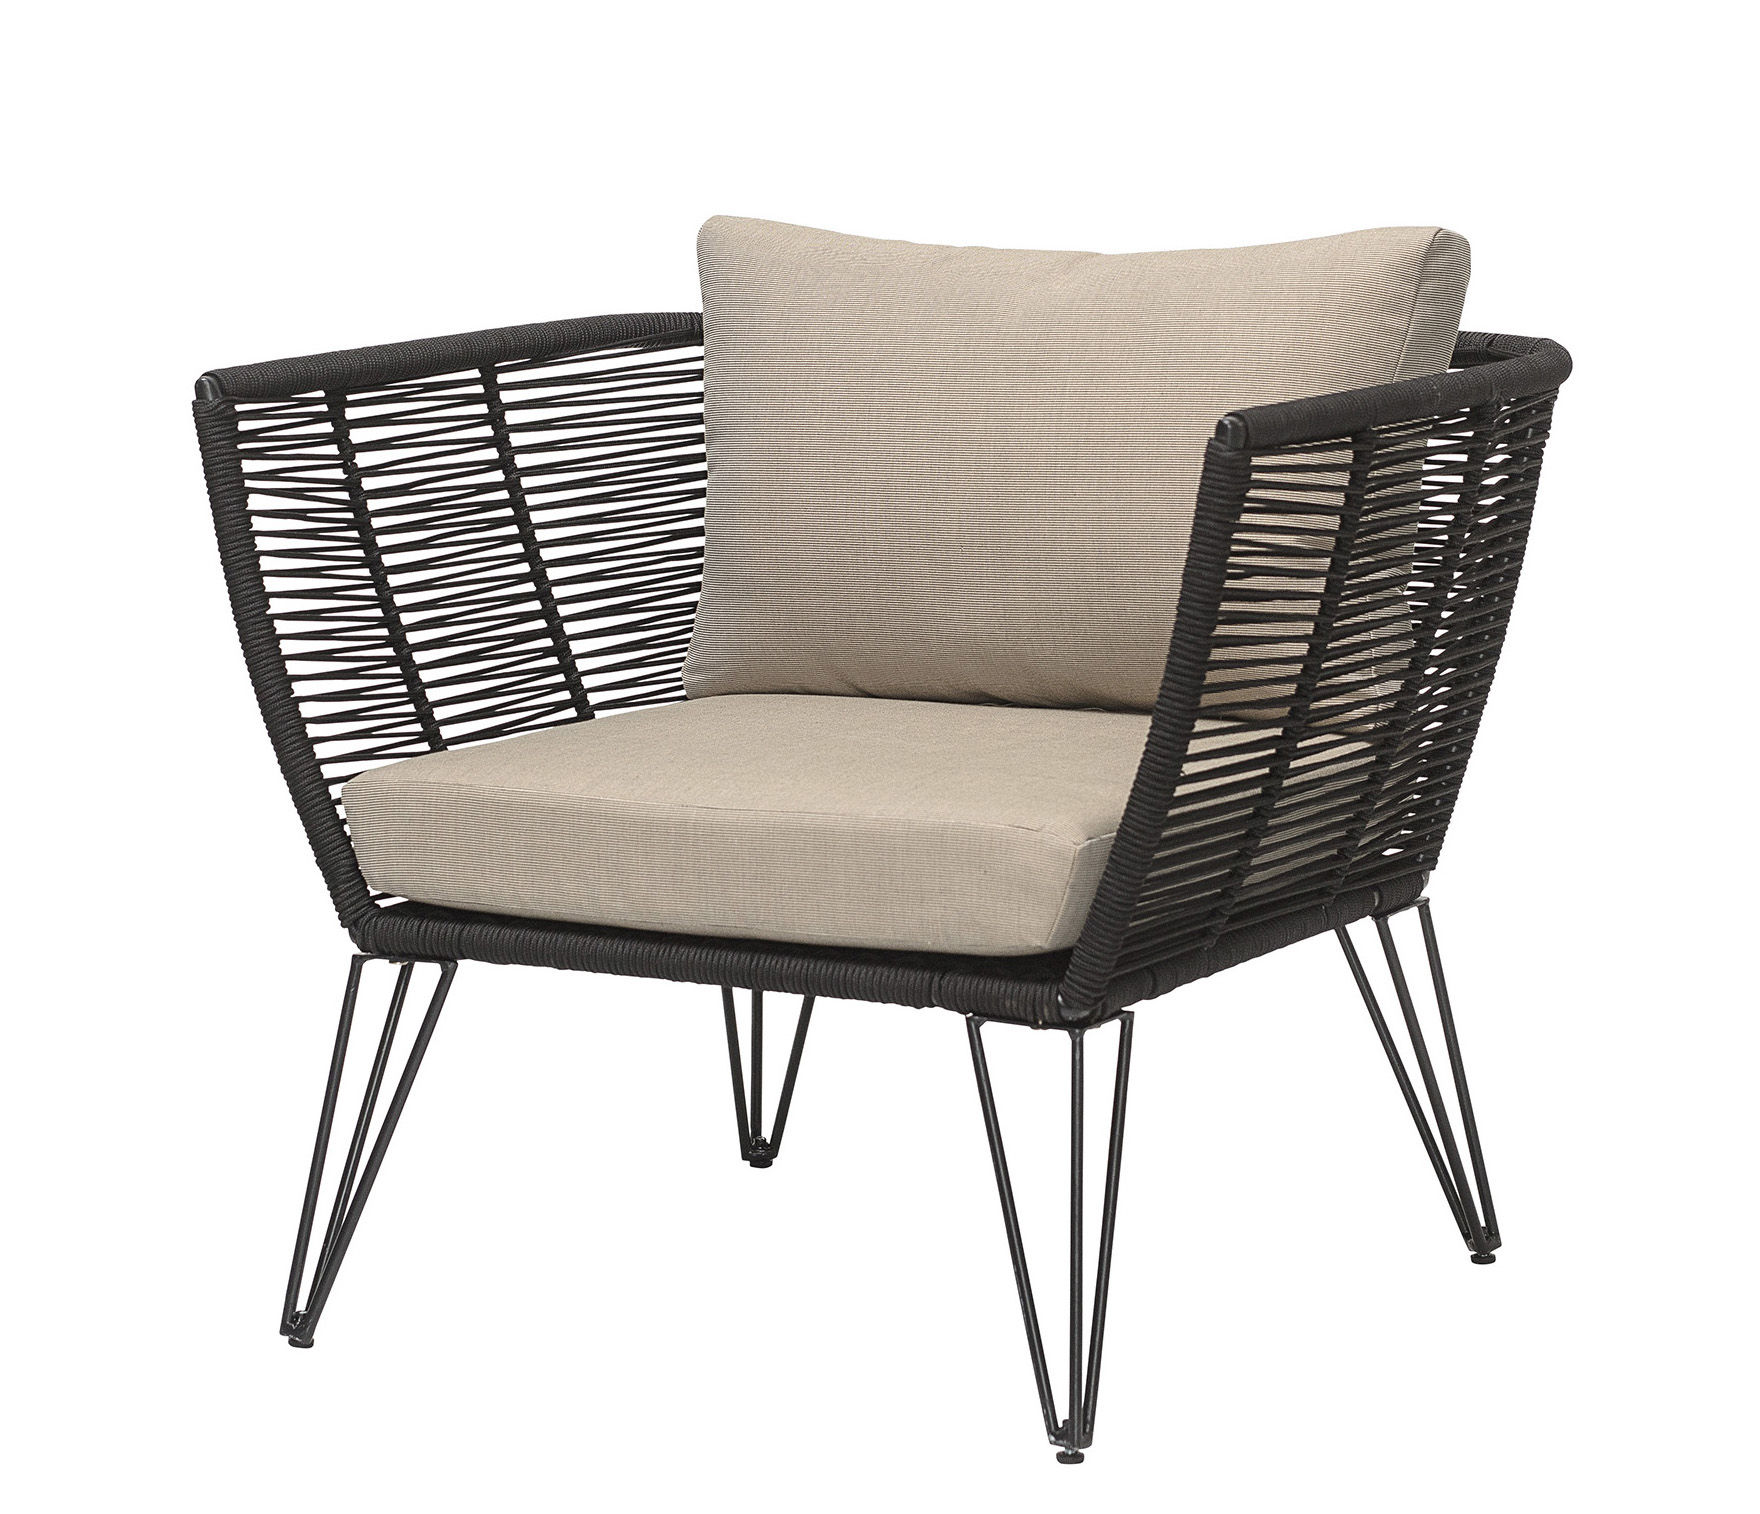 Bloomingville Metal Padded armchair - Black/Beige | Made ...